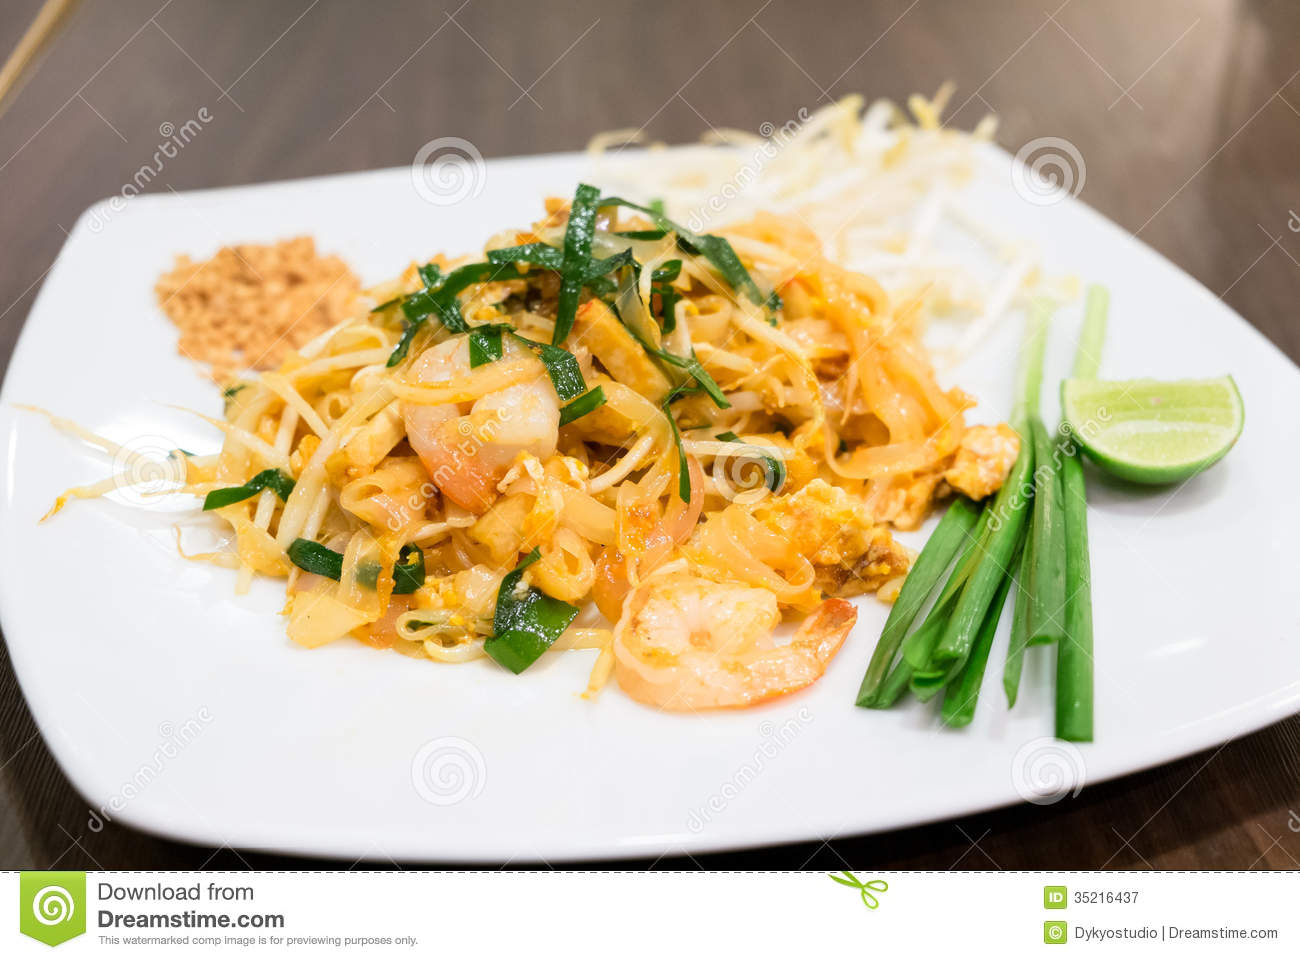 ... Pad Thai Goong Sod), thin rice noodles fried with tofu, vegetable, egg